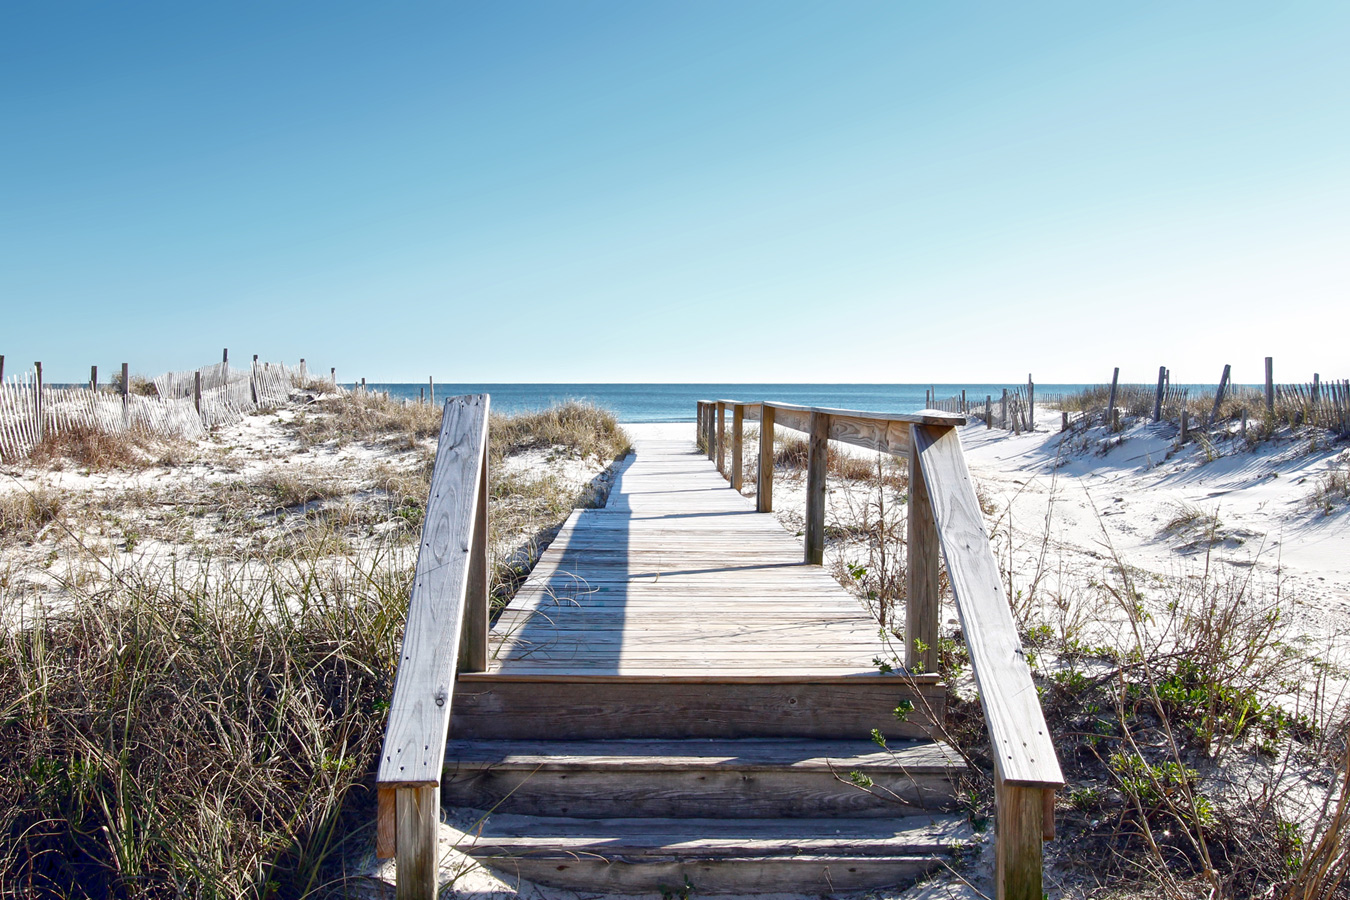 Boardwalk to private beach